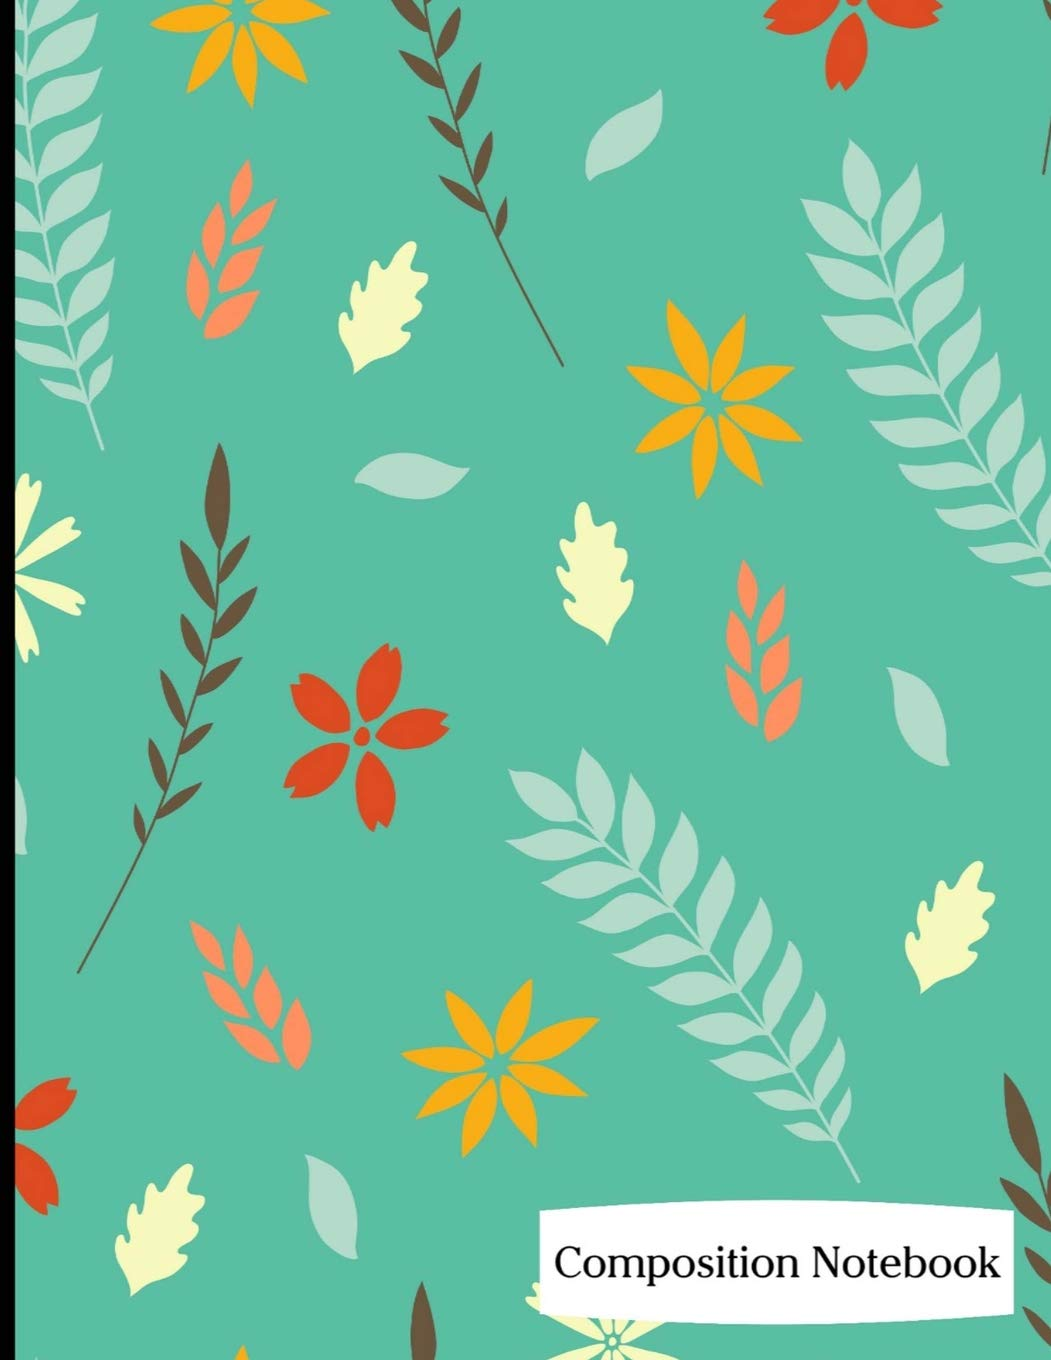 "Composition Notebook: Flower and Leaf Pattern on Green Background Composition Notebook - 8.5"" x 11"" - 200 pages (100 sheets) College Ruled Lined Paper. Glossy Cover. PDF"